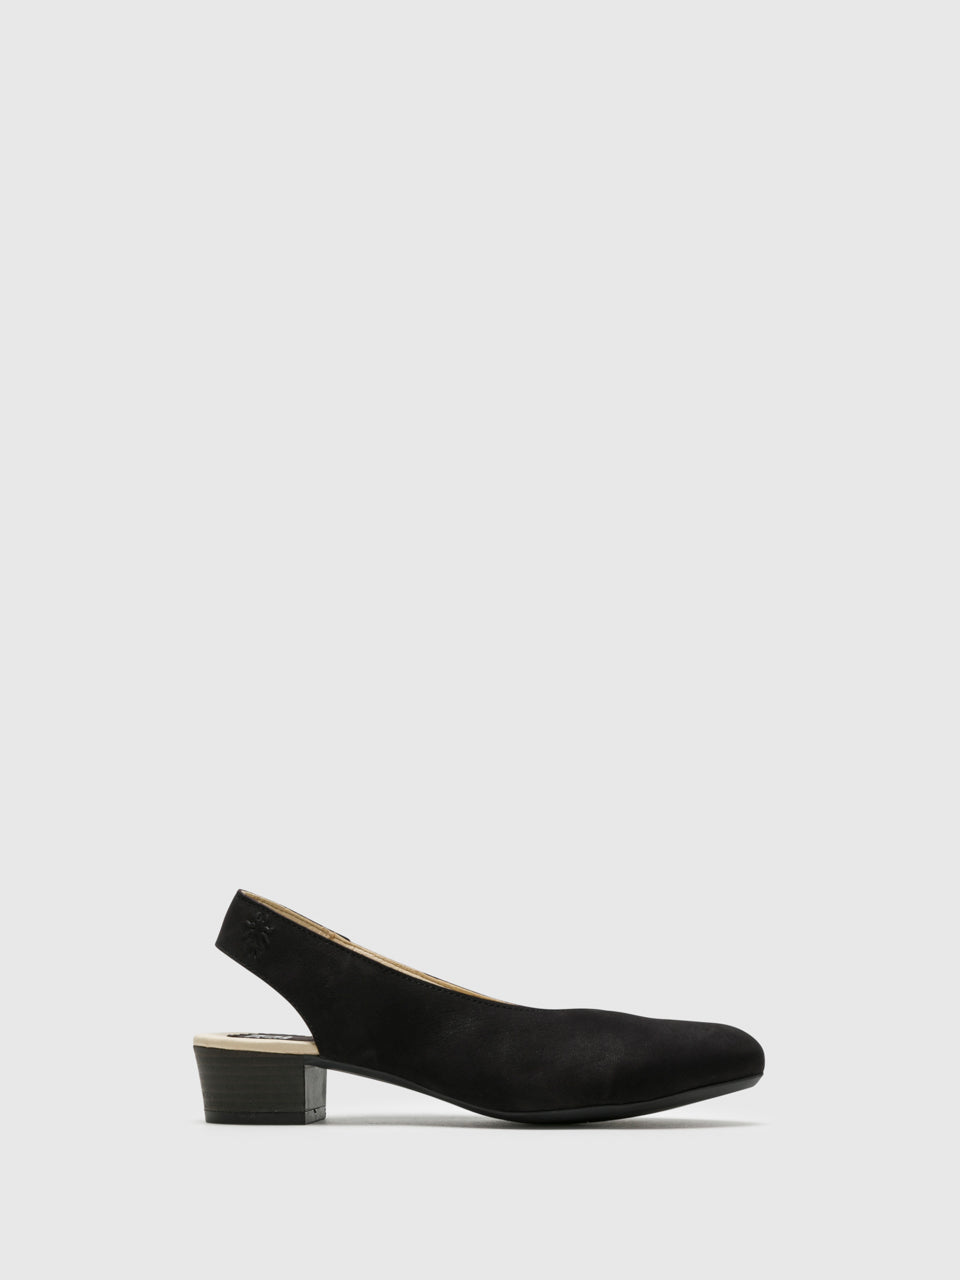 Fly London Black Sling-Back Pumps Shoes